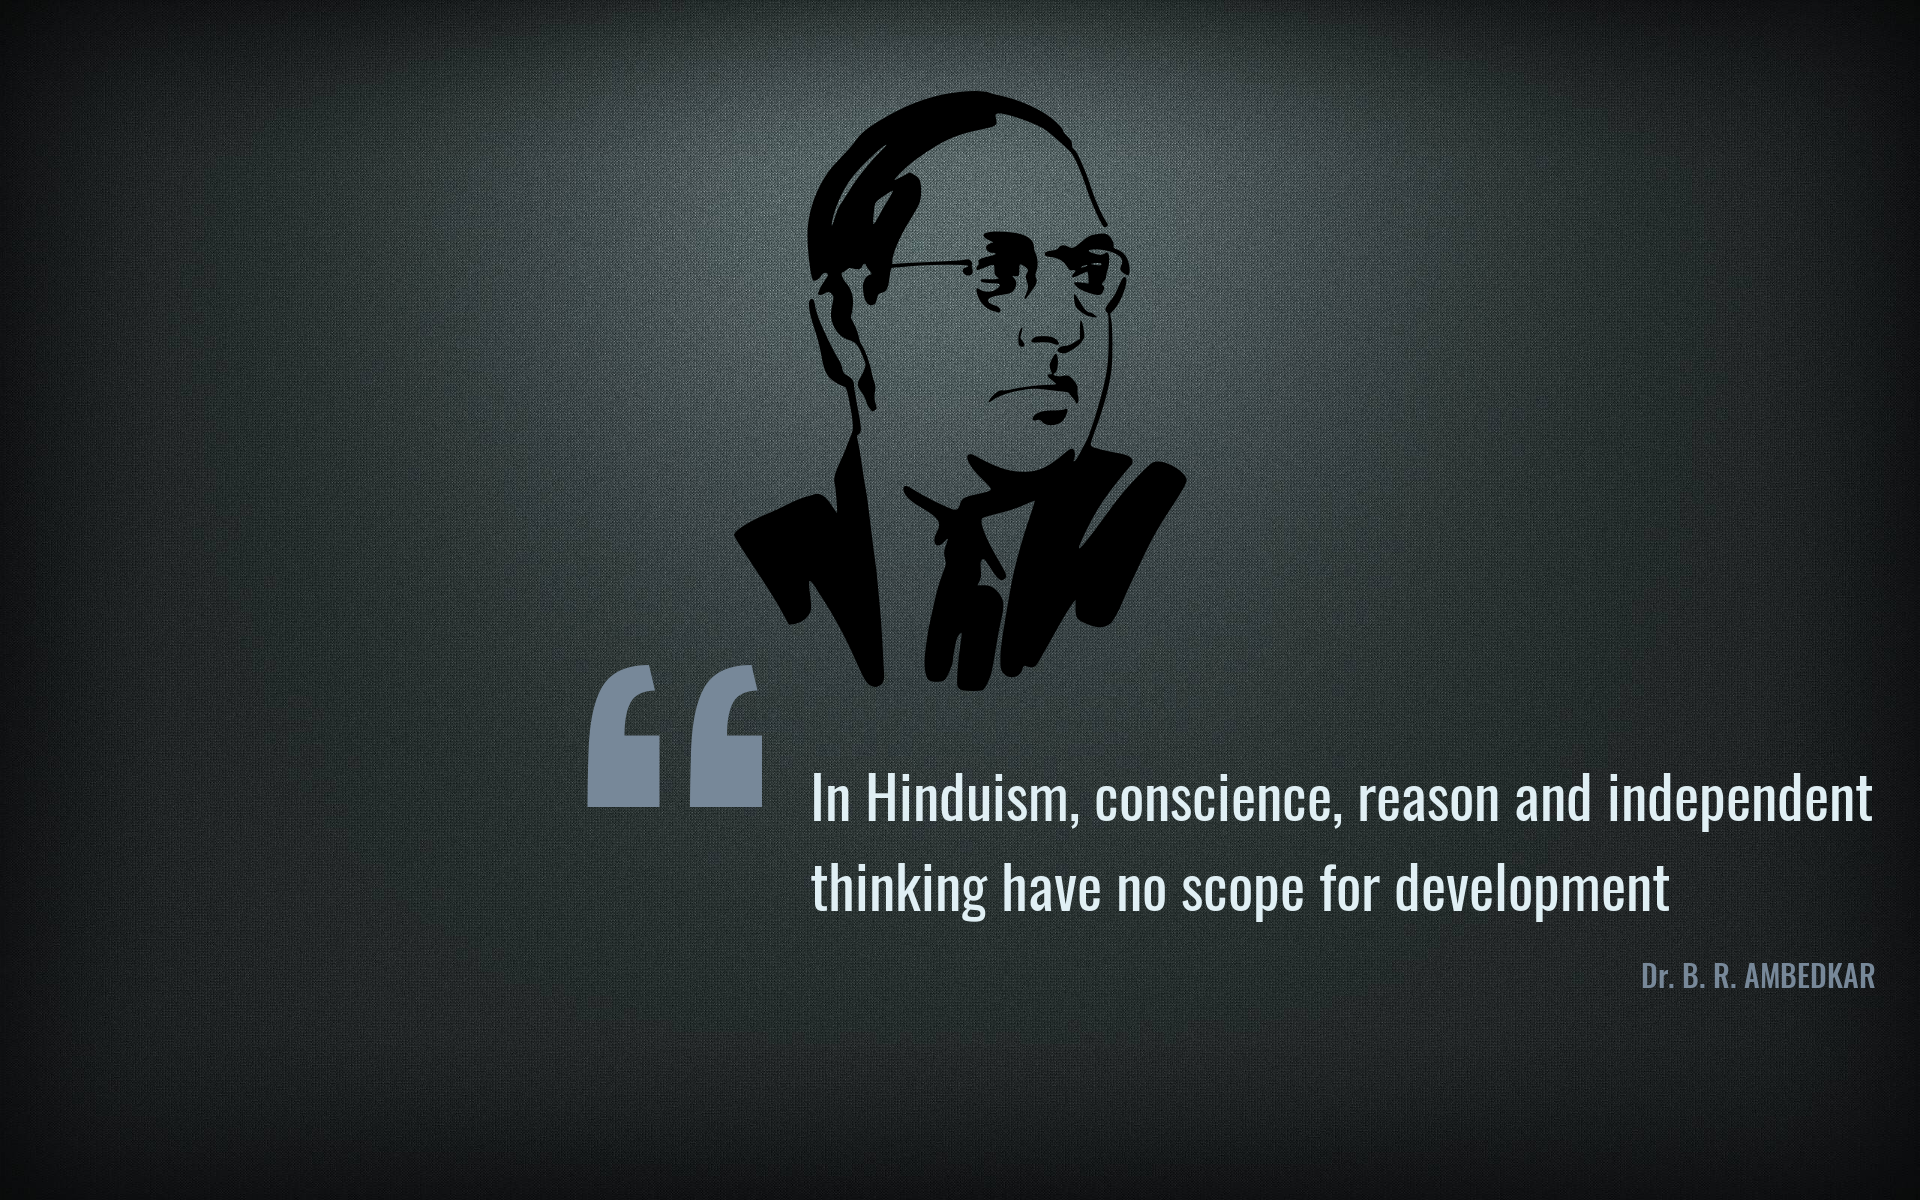 Dr Ambedkar Hd Wallpaper And Quote Hd Wallpaper Freedom Of Speech Quotes